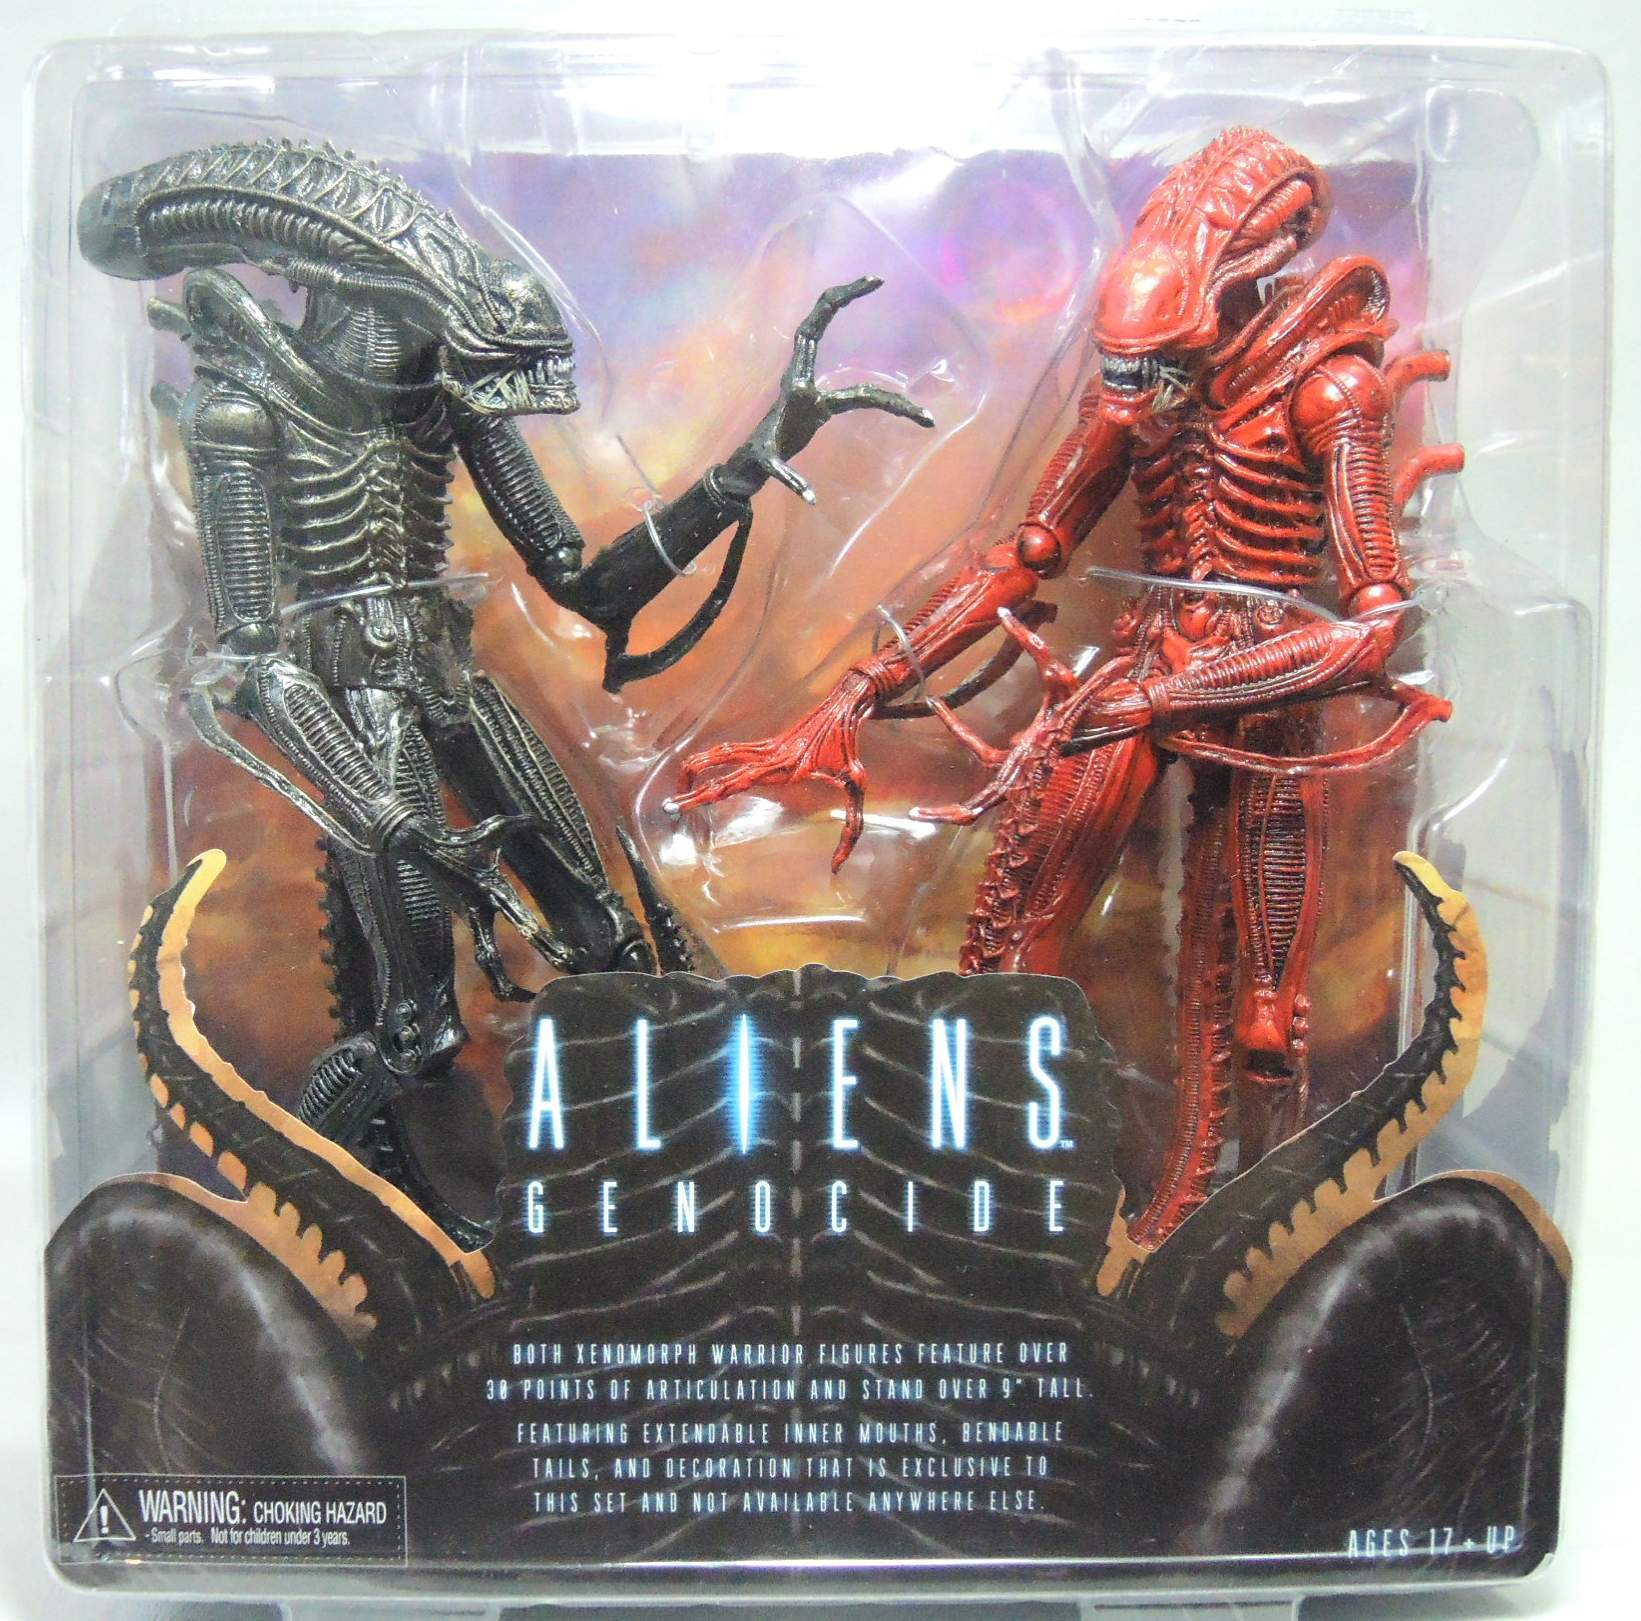 NECA Aliens 2-pack 8 inch figures - Genocide NECA, Aliens, Action Figures, 2013, scifi, movie